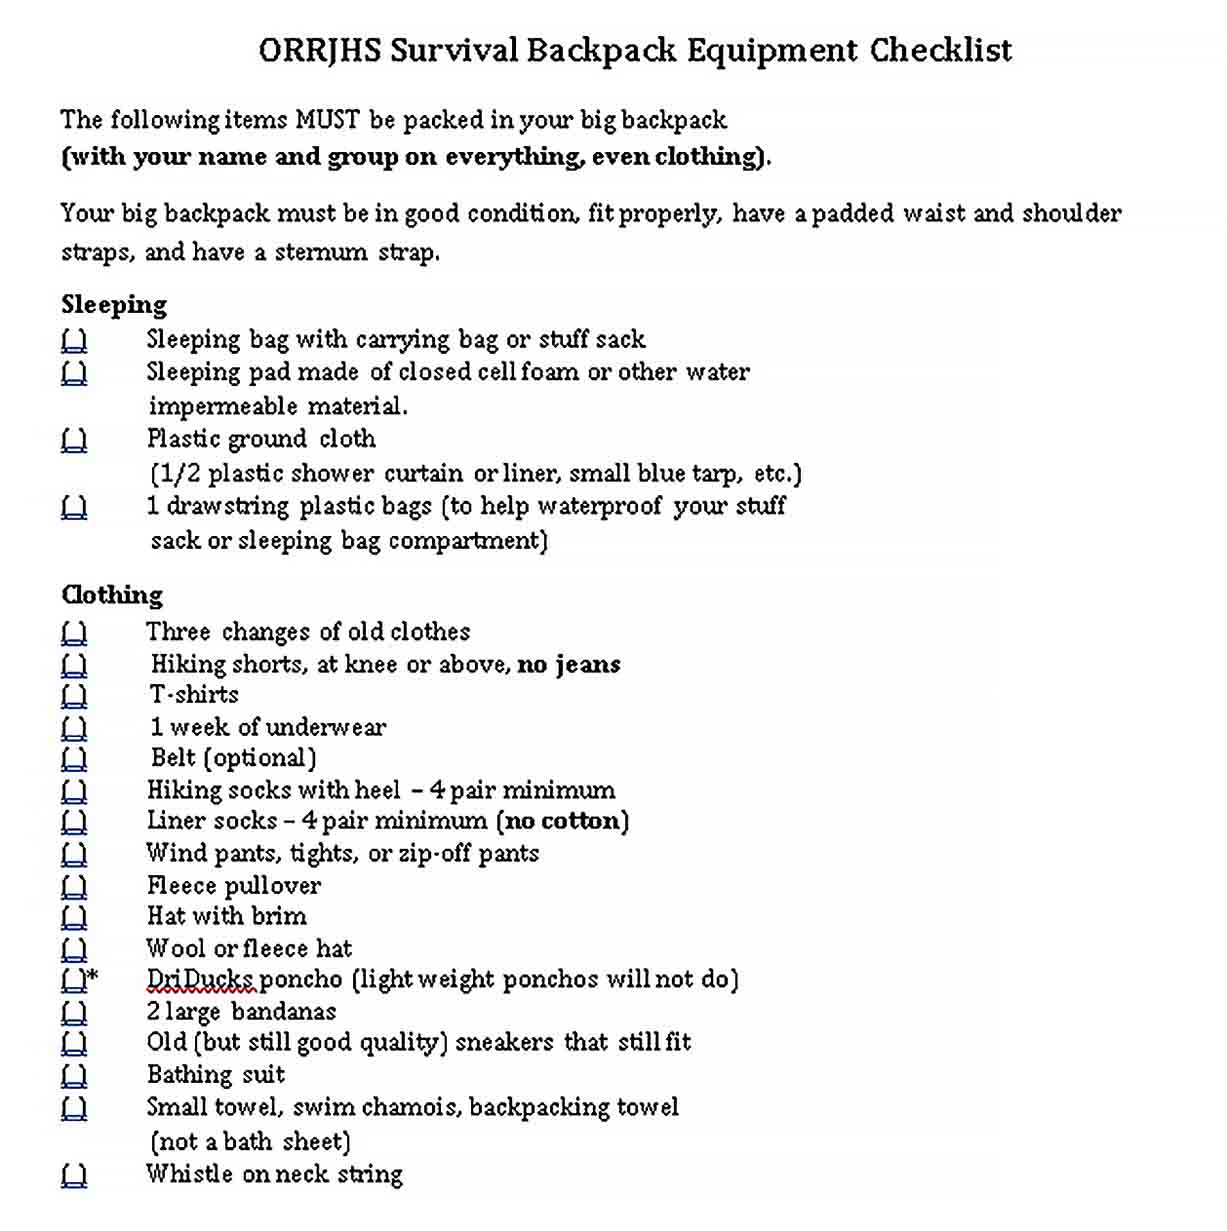 Template Survival Backpack Equipment Checklist